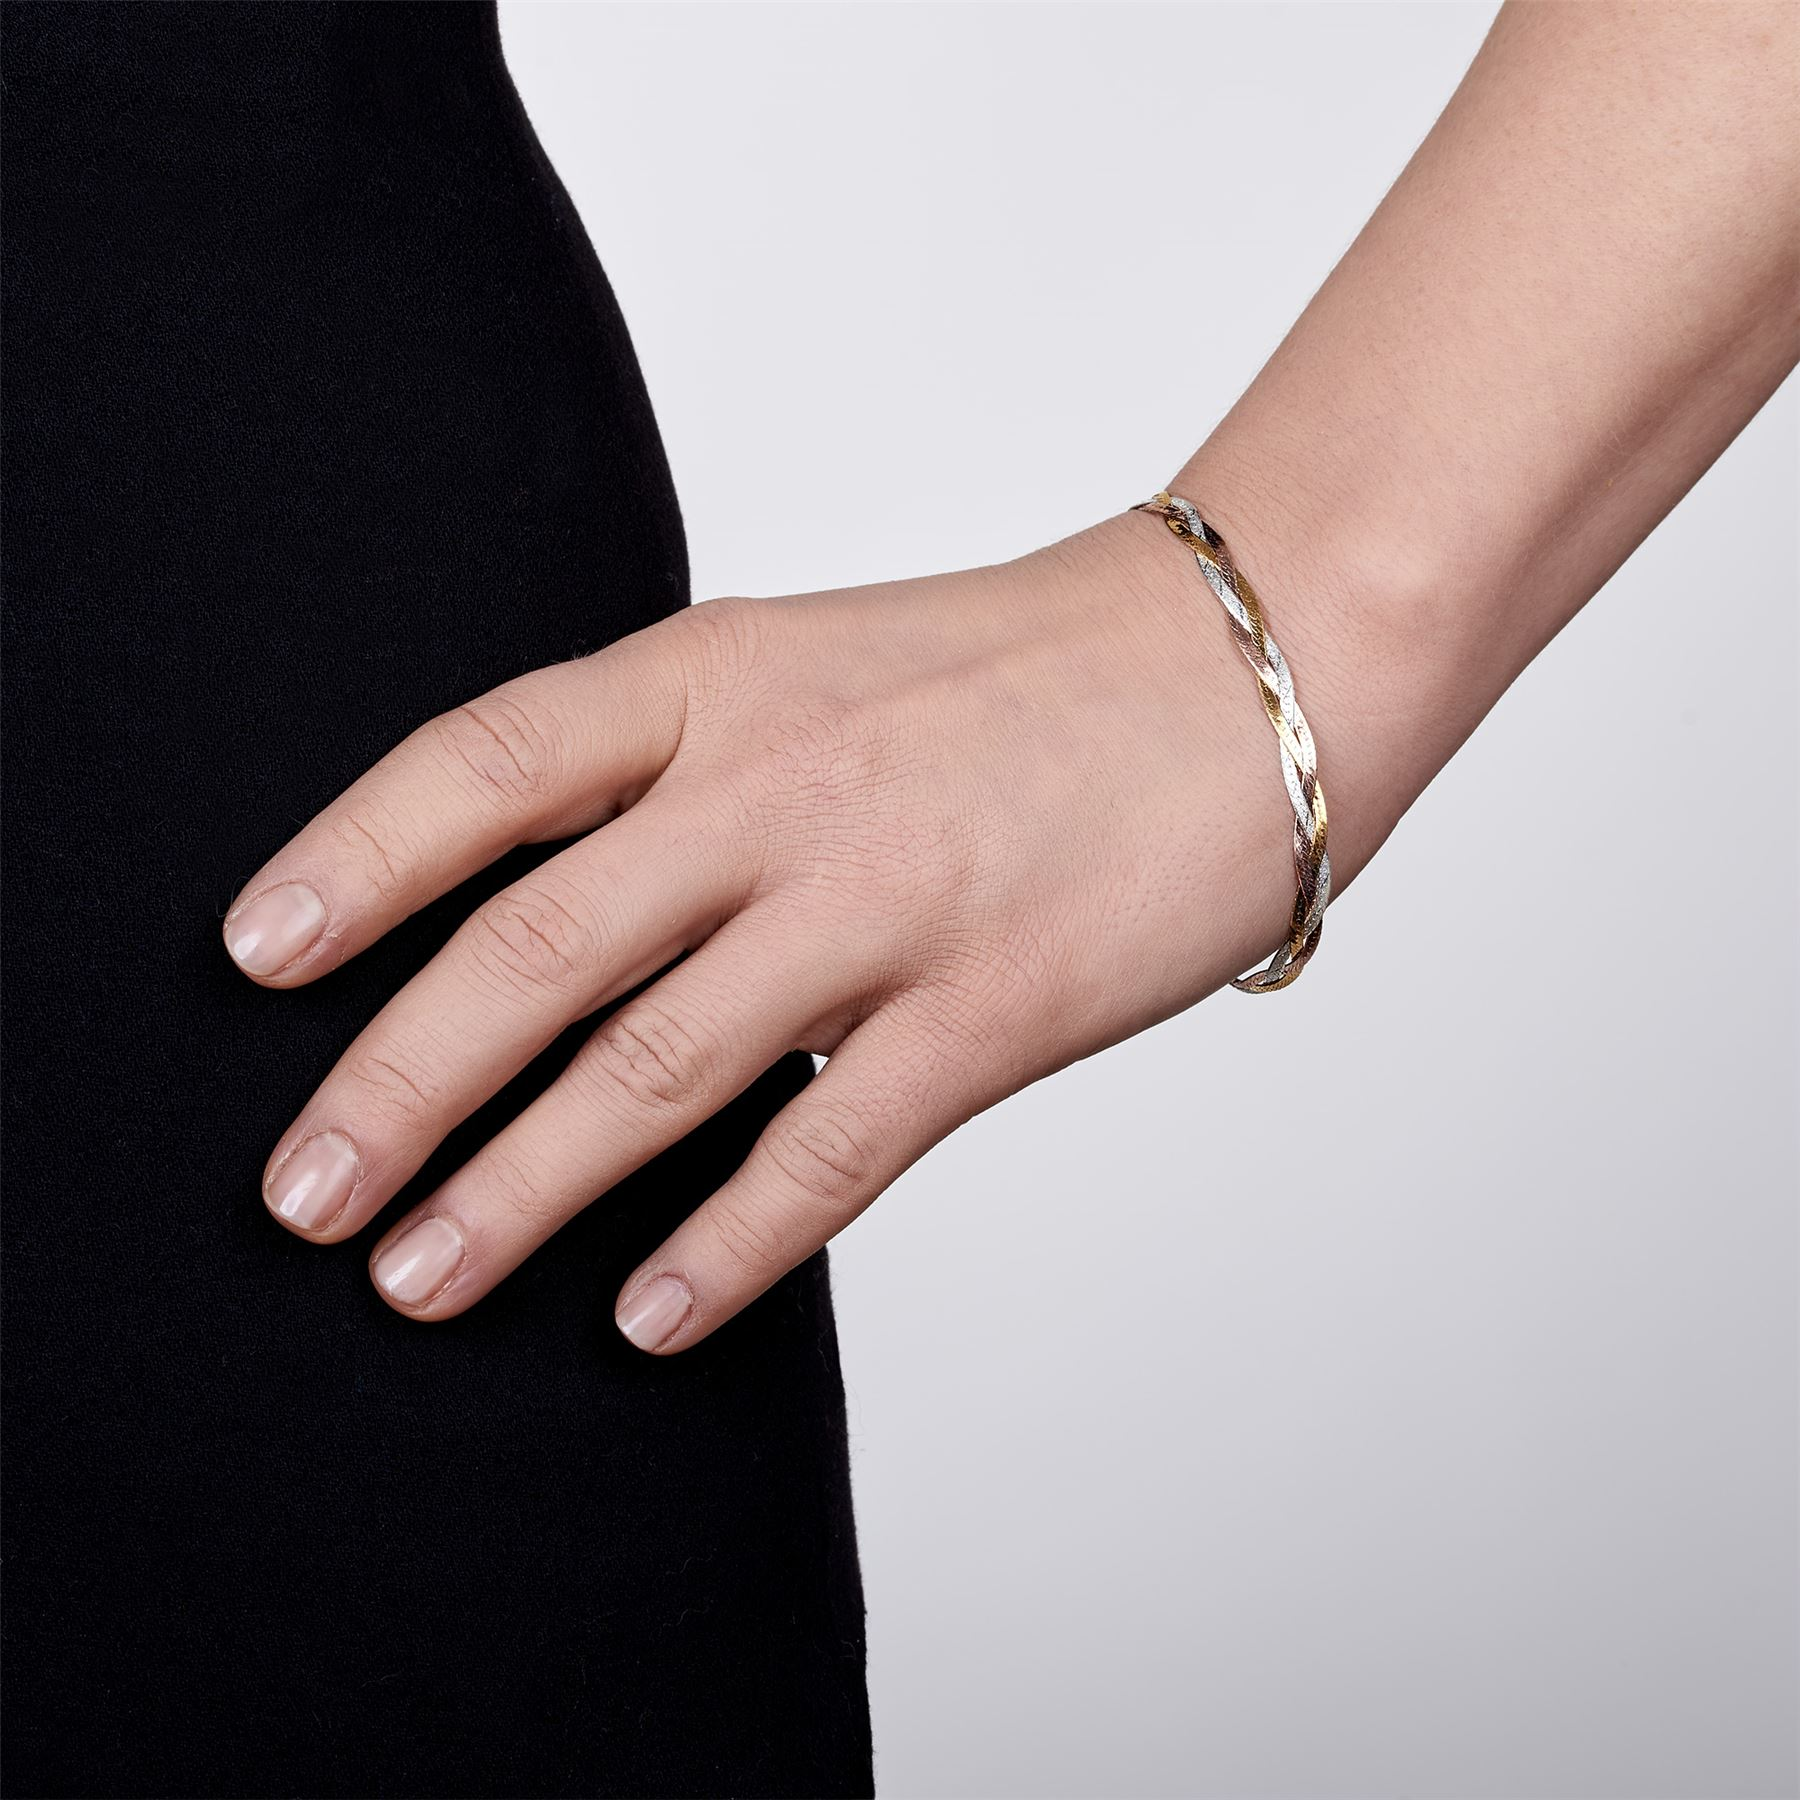 Amberta-Jewelry-Genuine-925-Sterling-Silver-Bracelet-Bangle-Chain-Made-in-Italy thumbnail 105